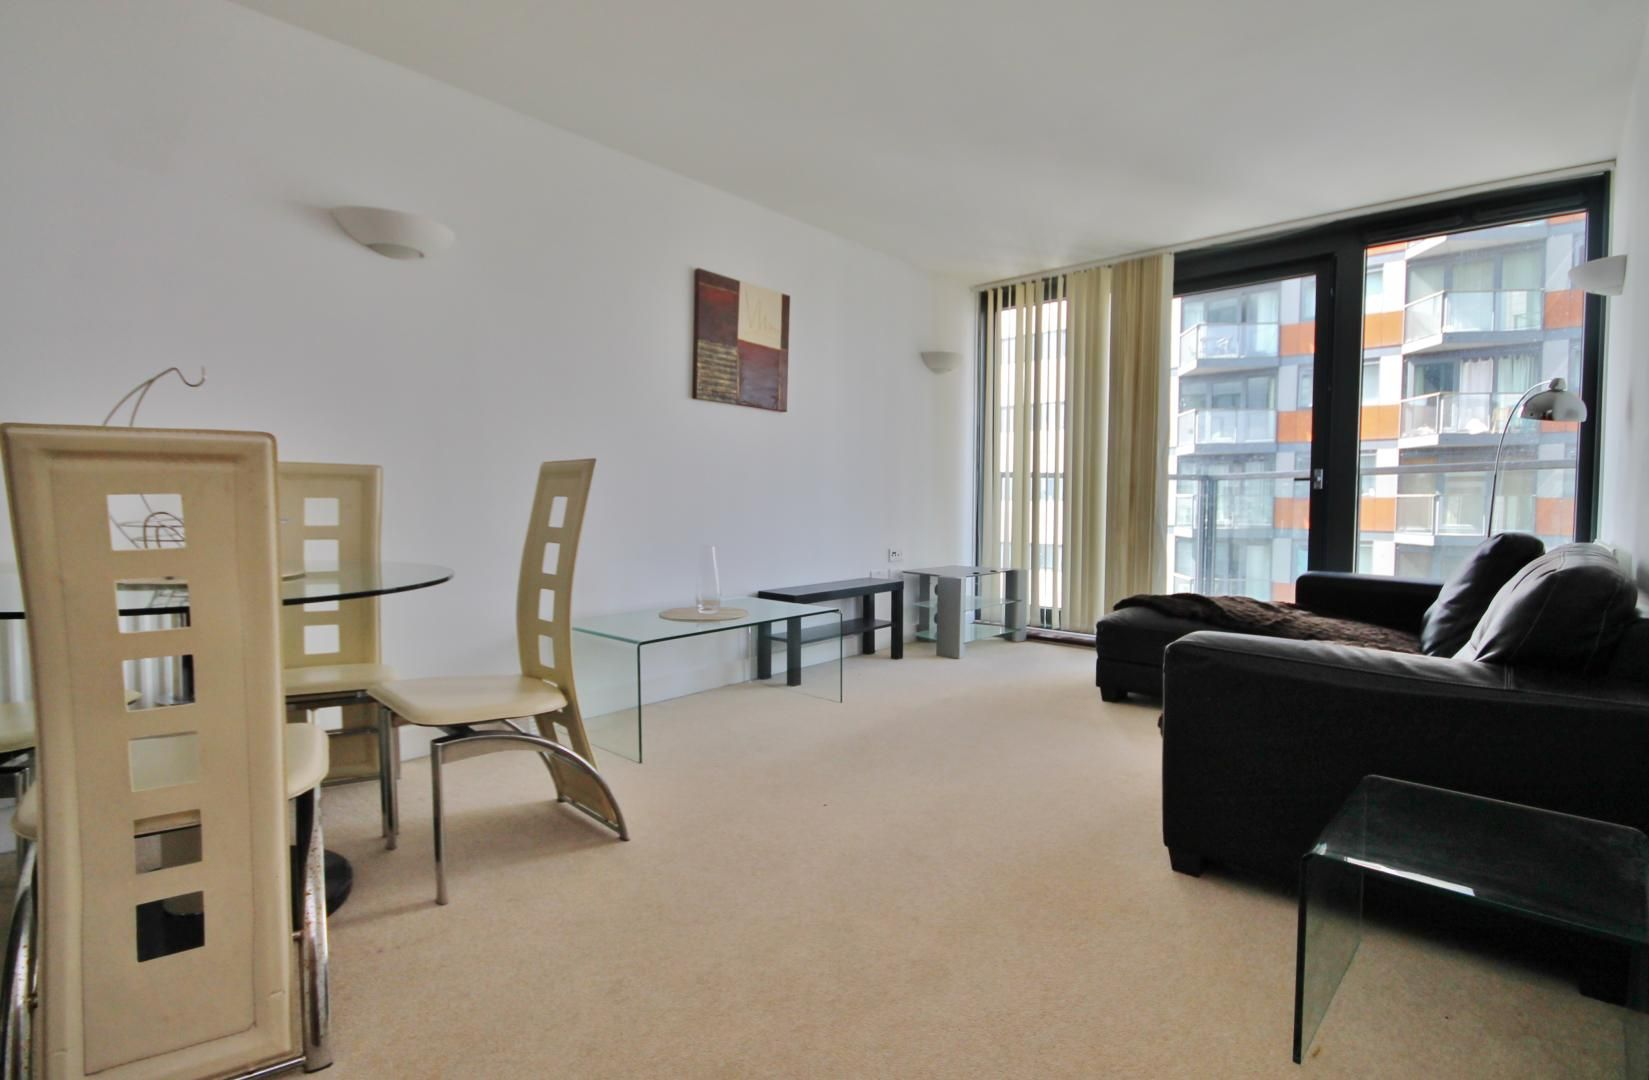 1 bed flat to rent in Neutron Tower, E14